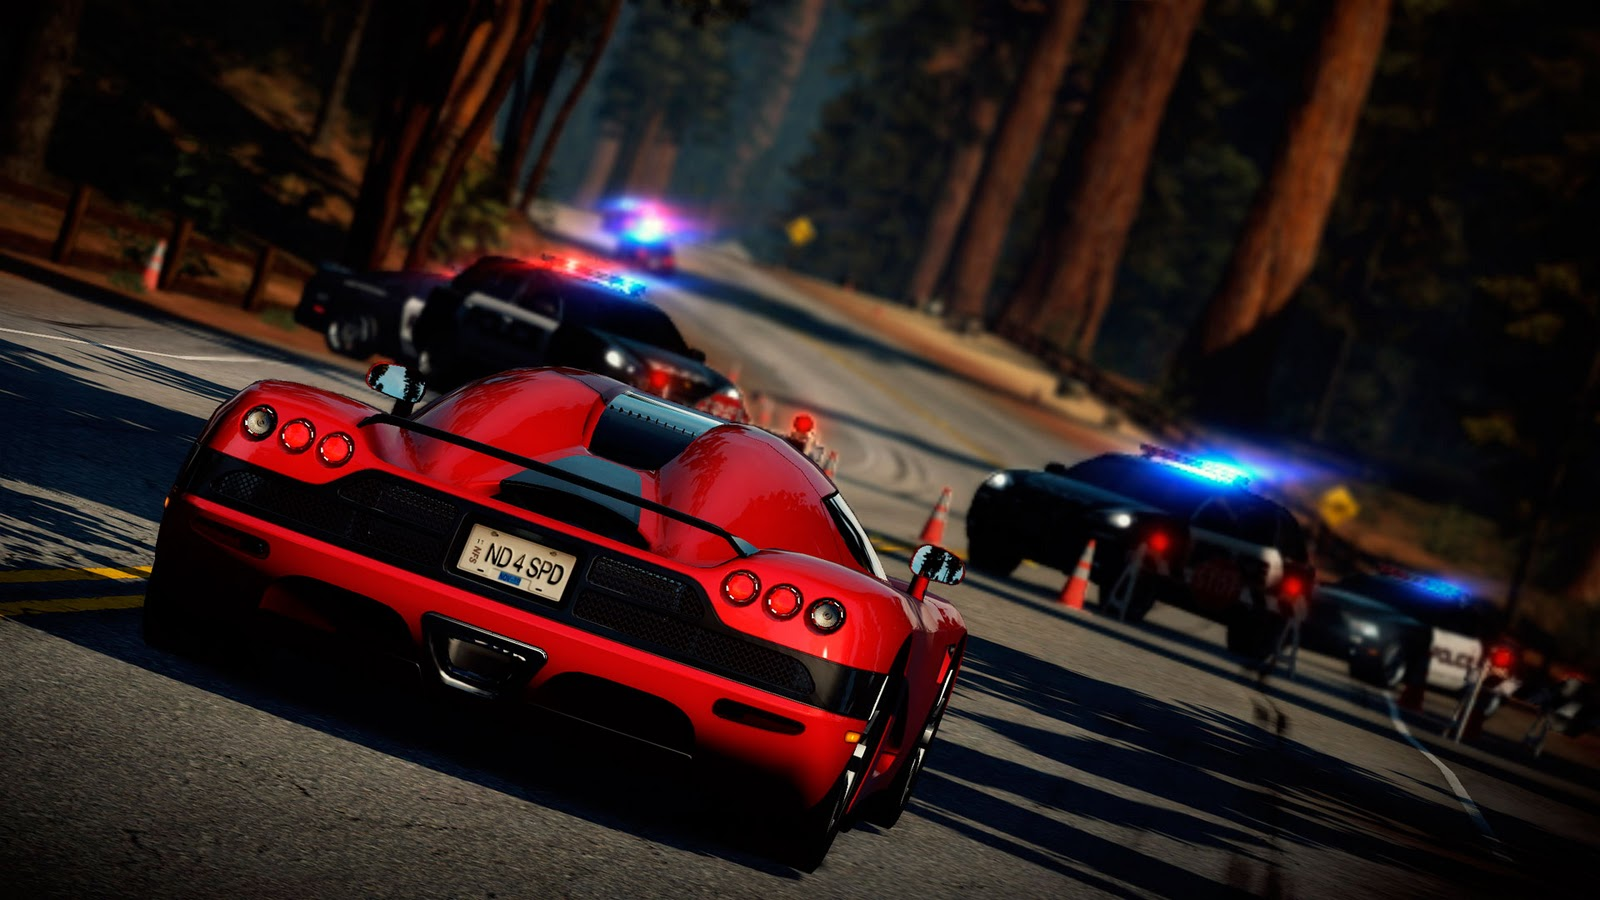 http://1.bp.blogspot.com/-6RkTWlPdedg/TZXiK3tOJcI/AAAAAAAADR8/jKNLIpvTQqc/s1600/Need_For_Speed_Hot_Pursuit_HD_Wallpapers_4.jpg